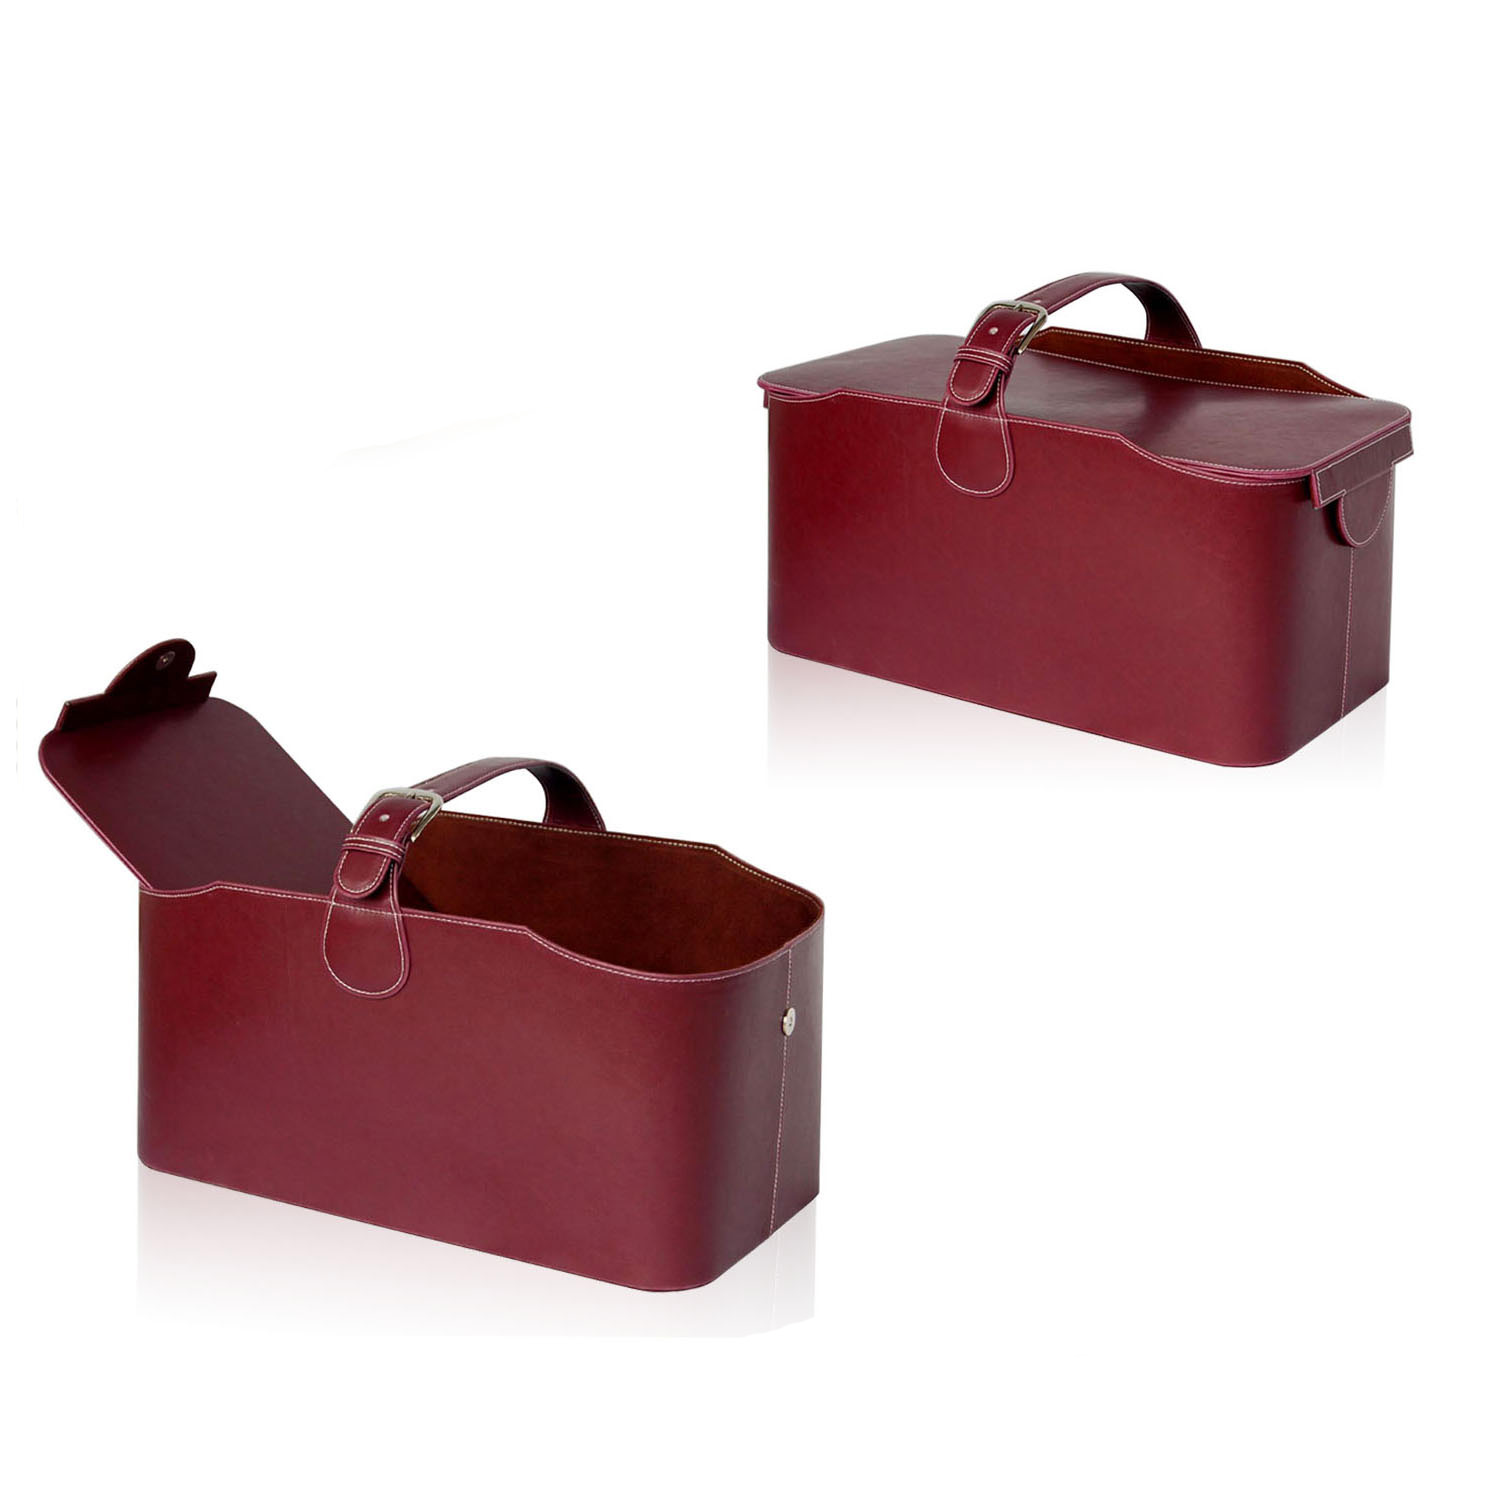 Accept Custom Color Handmade Sundries Packing Leather Storage Basket With Lid